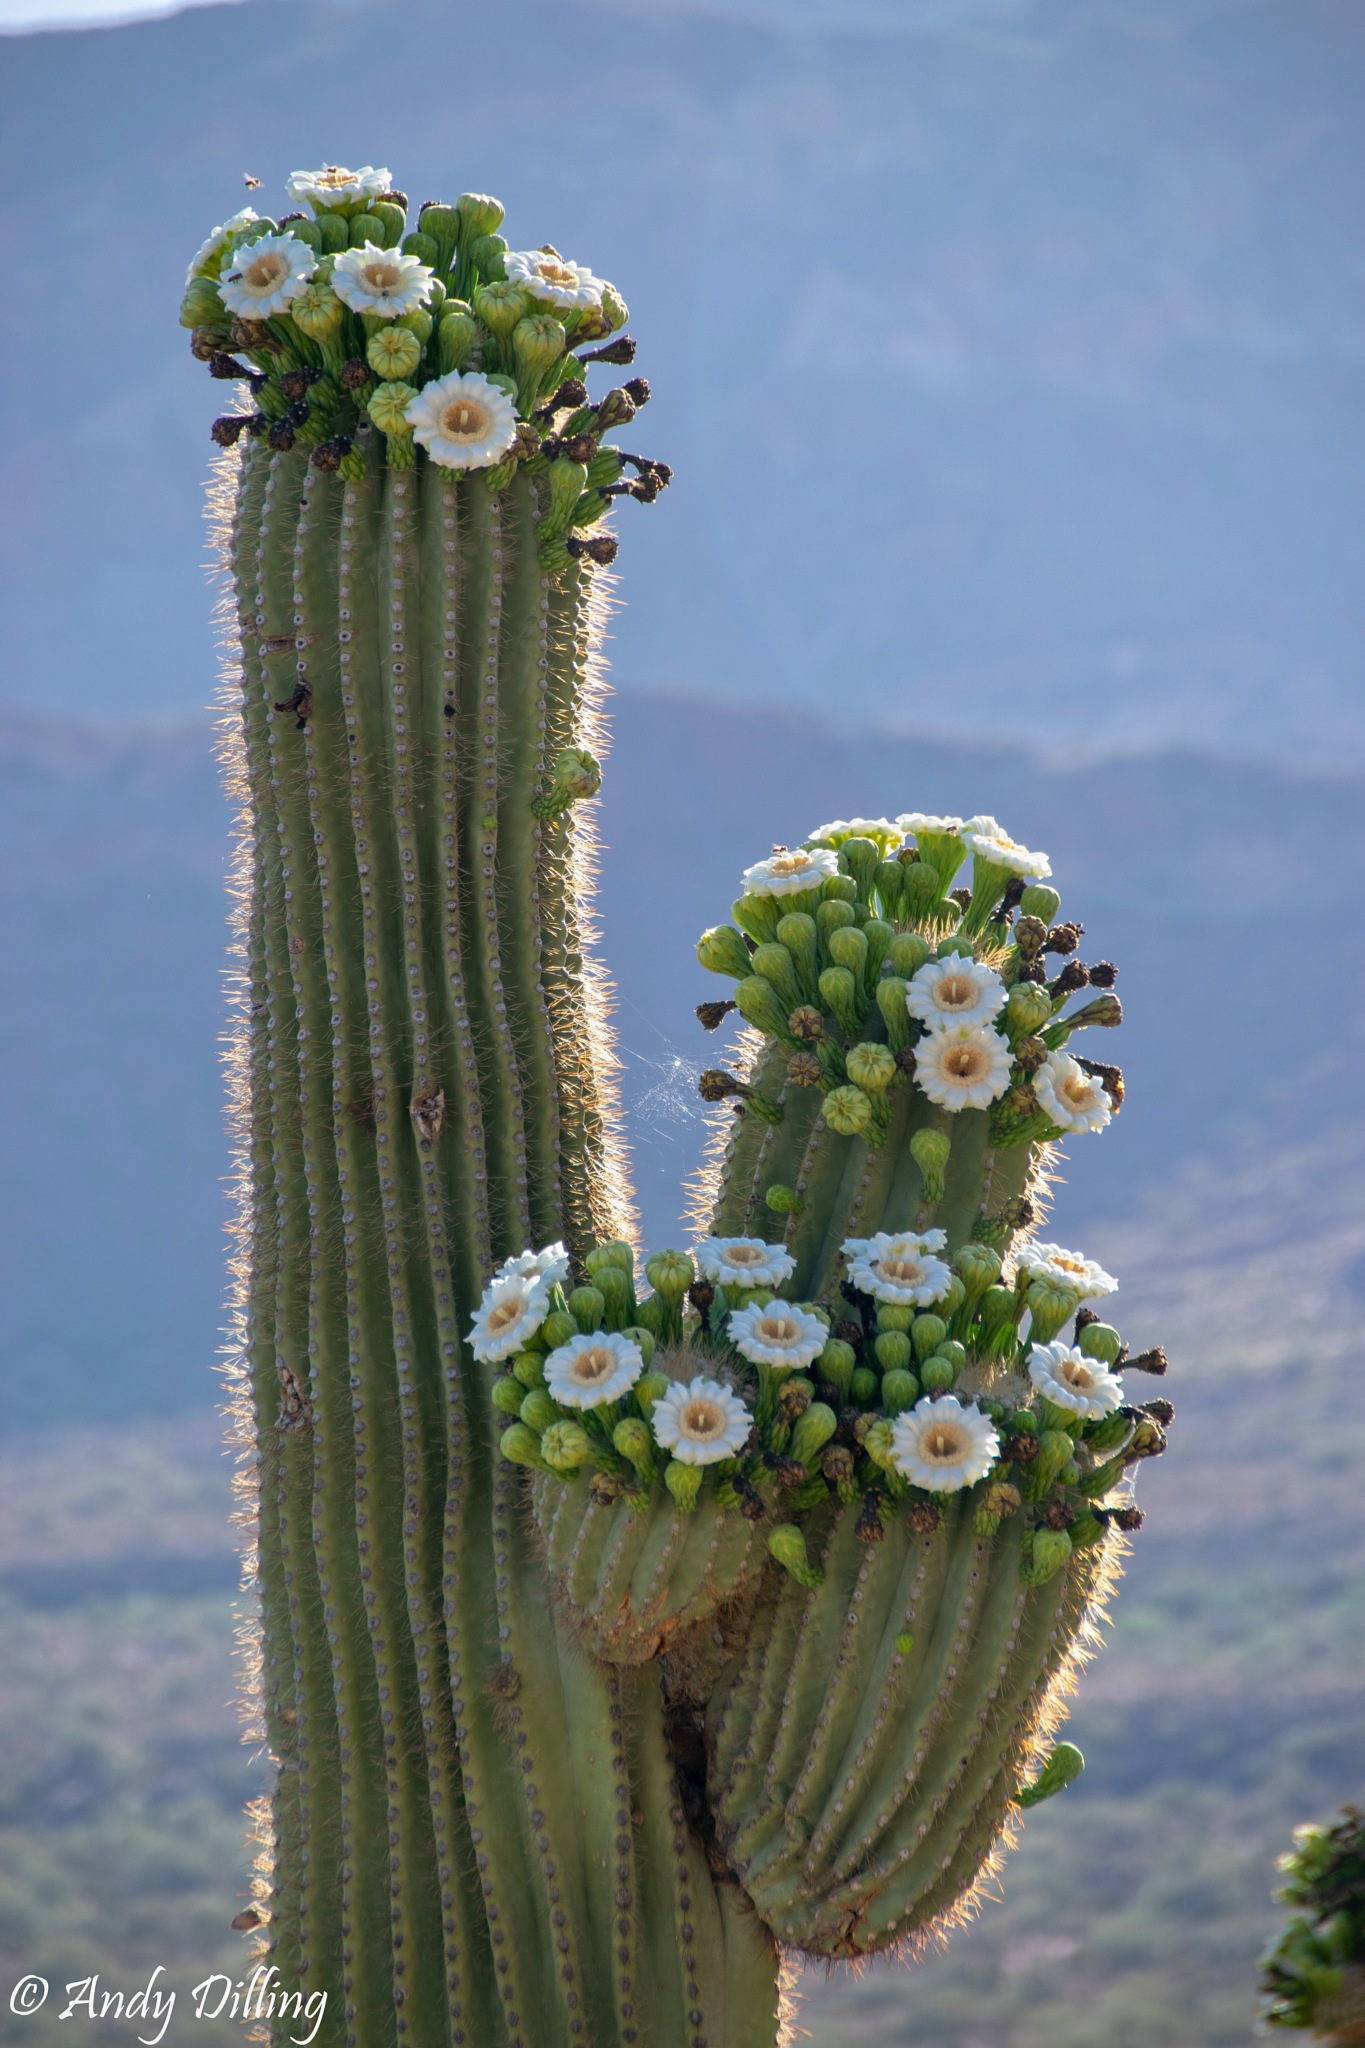 A desert bouquet by Andy Dilling